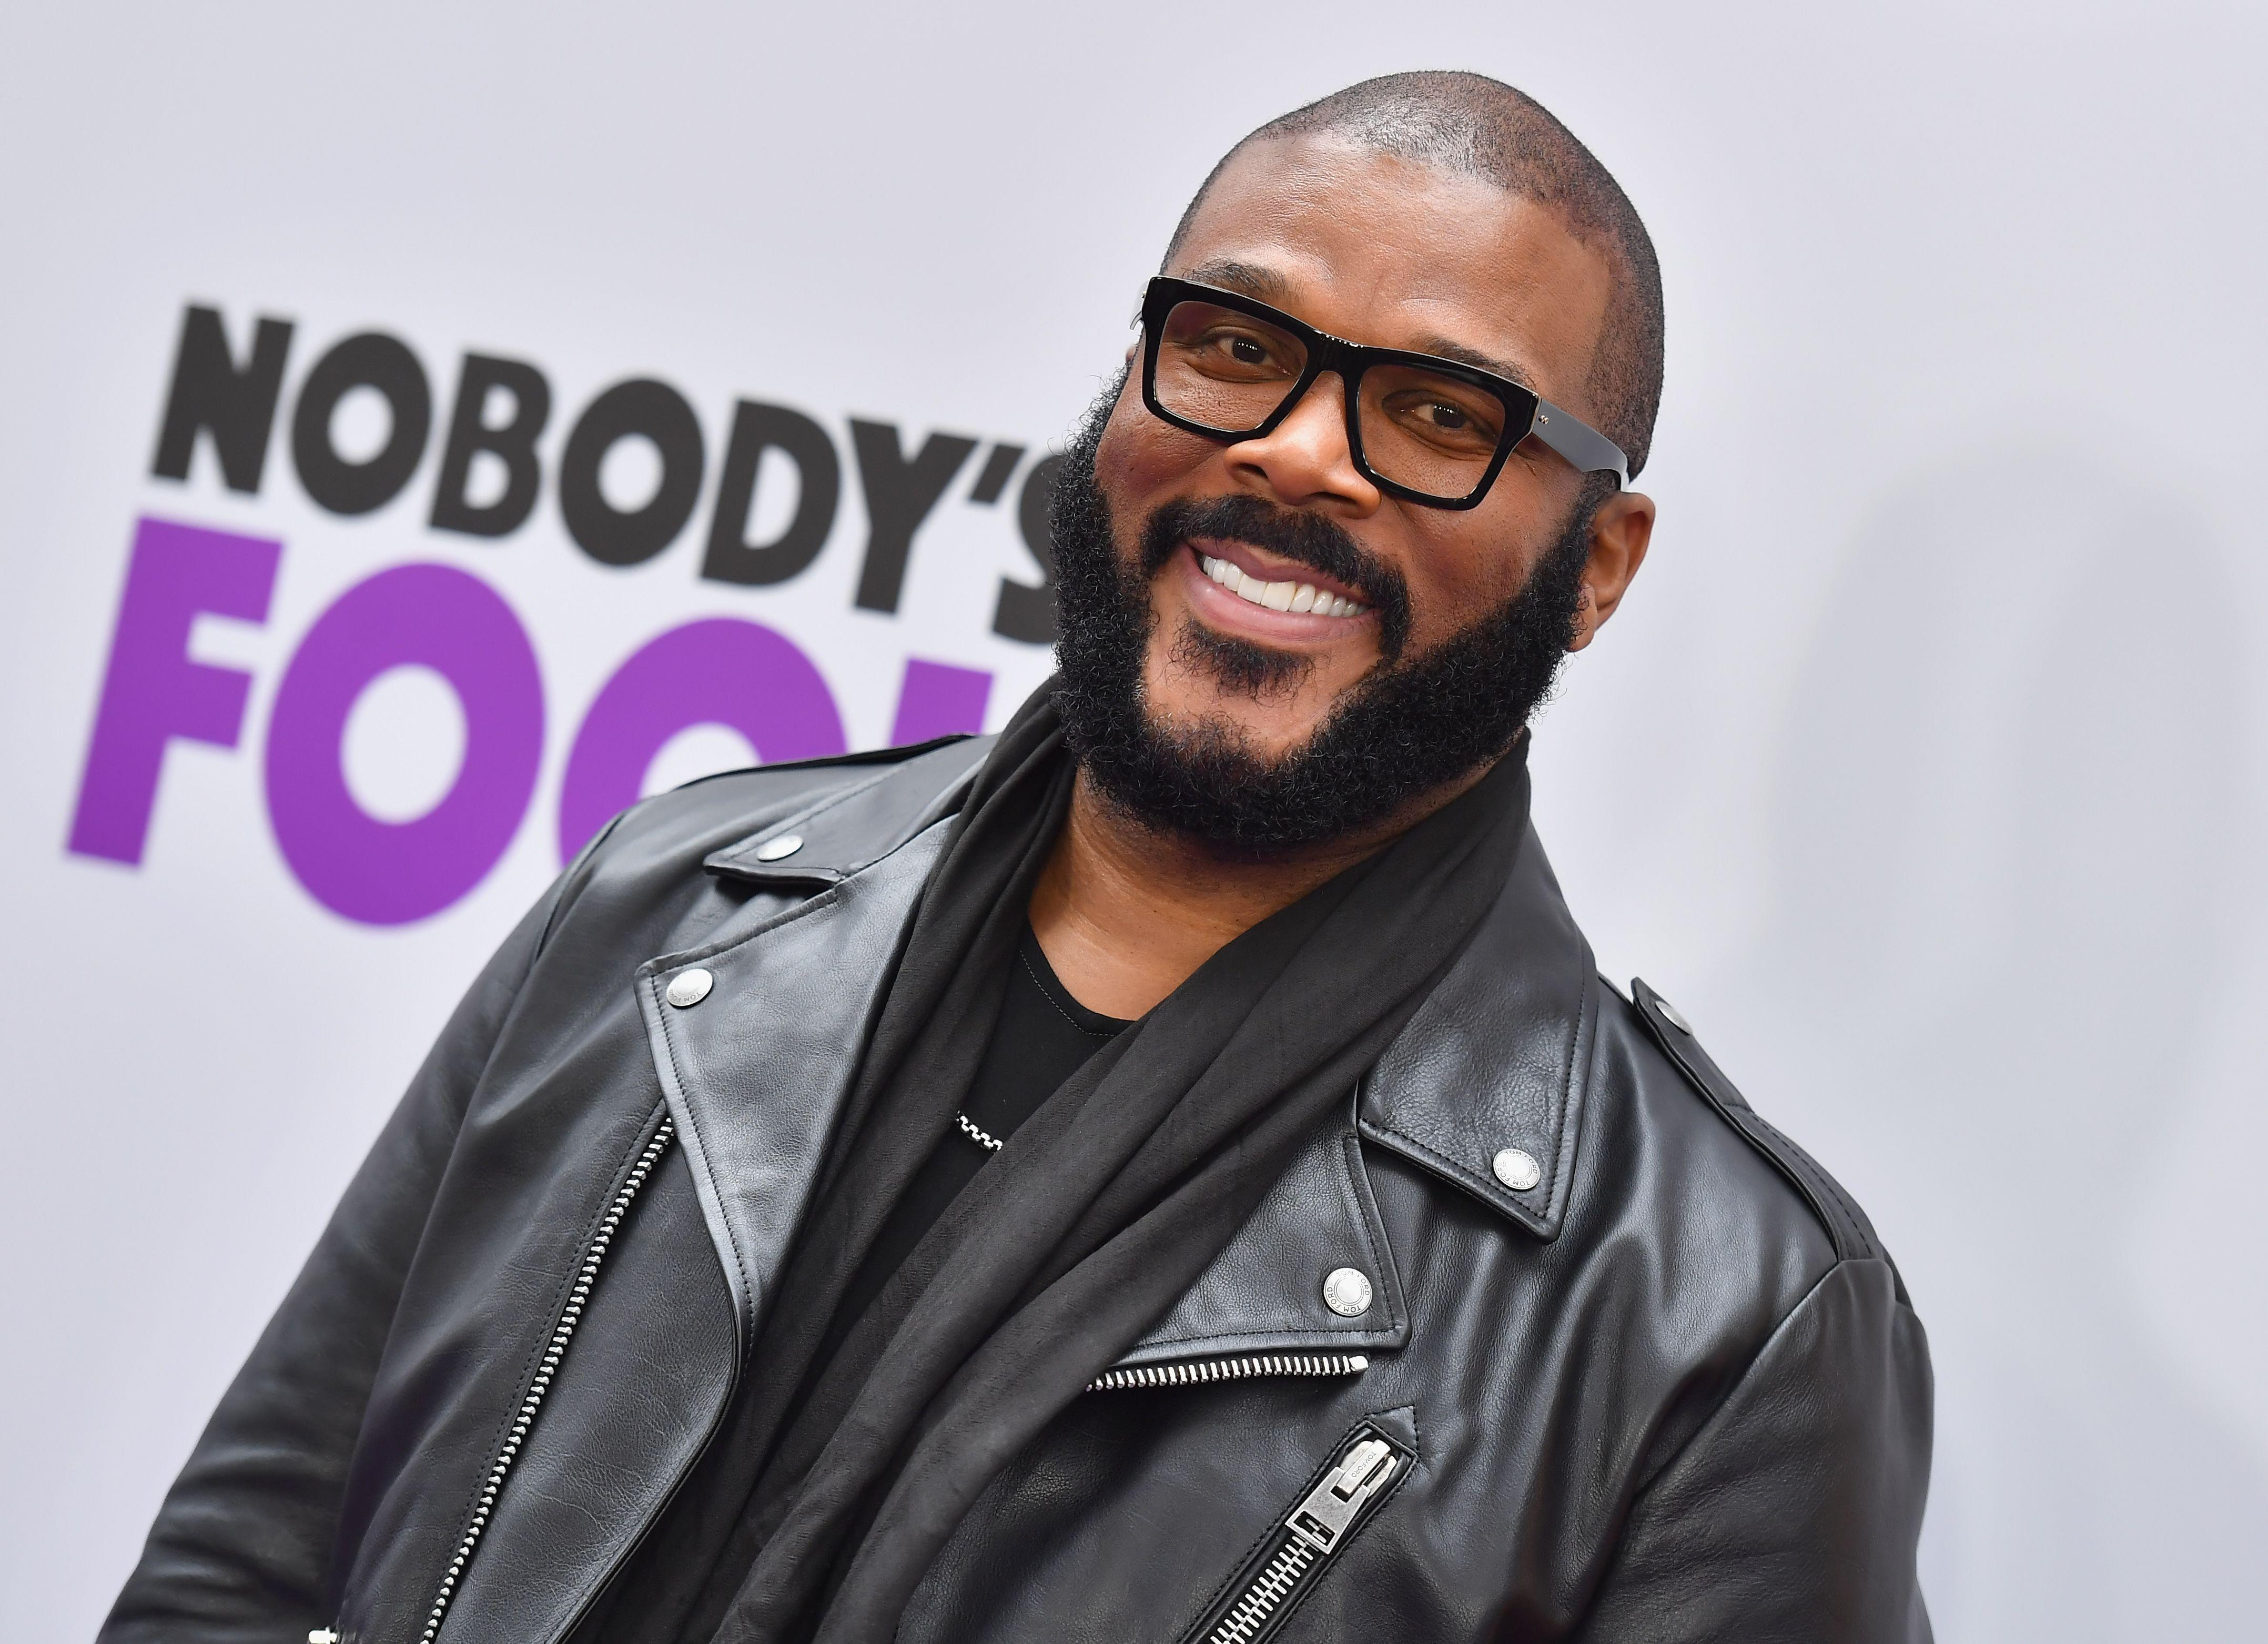 Tyler Perry dropped over $430K to pay off Walmart layaways: 'Go get your stuff, Merry Christmas!'